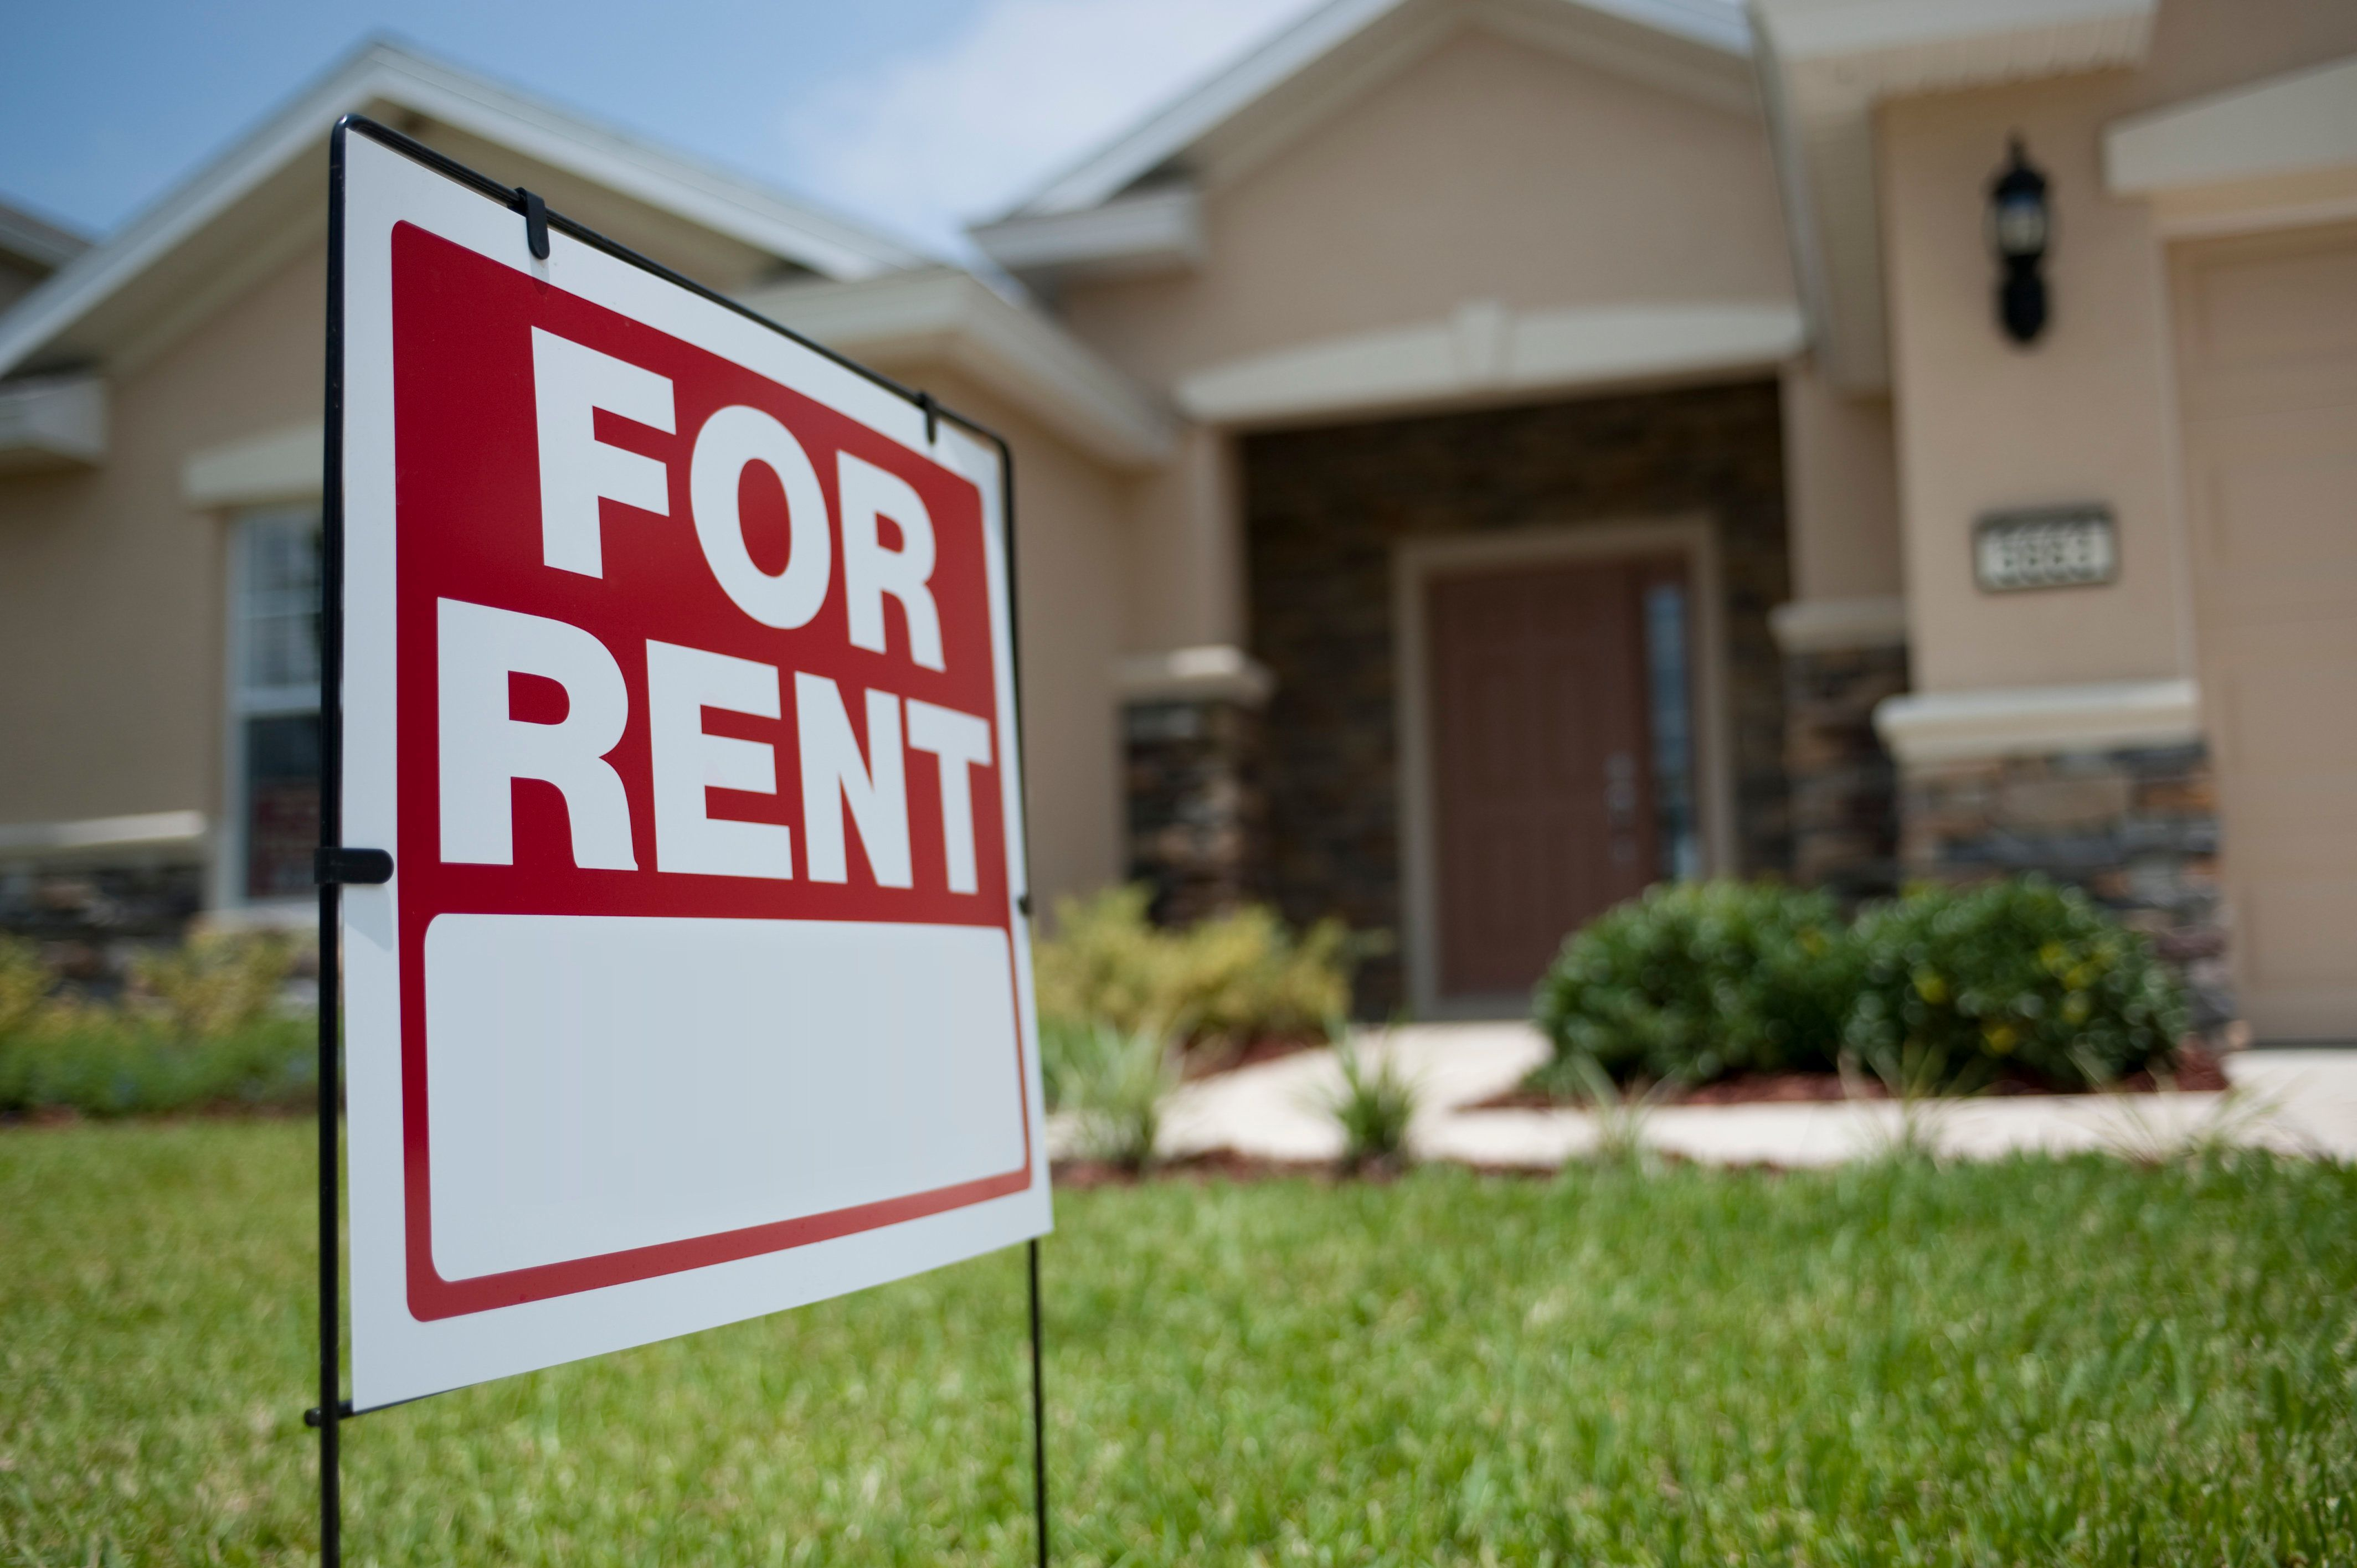 Renting a home often makes more financial sense than buying.